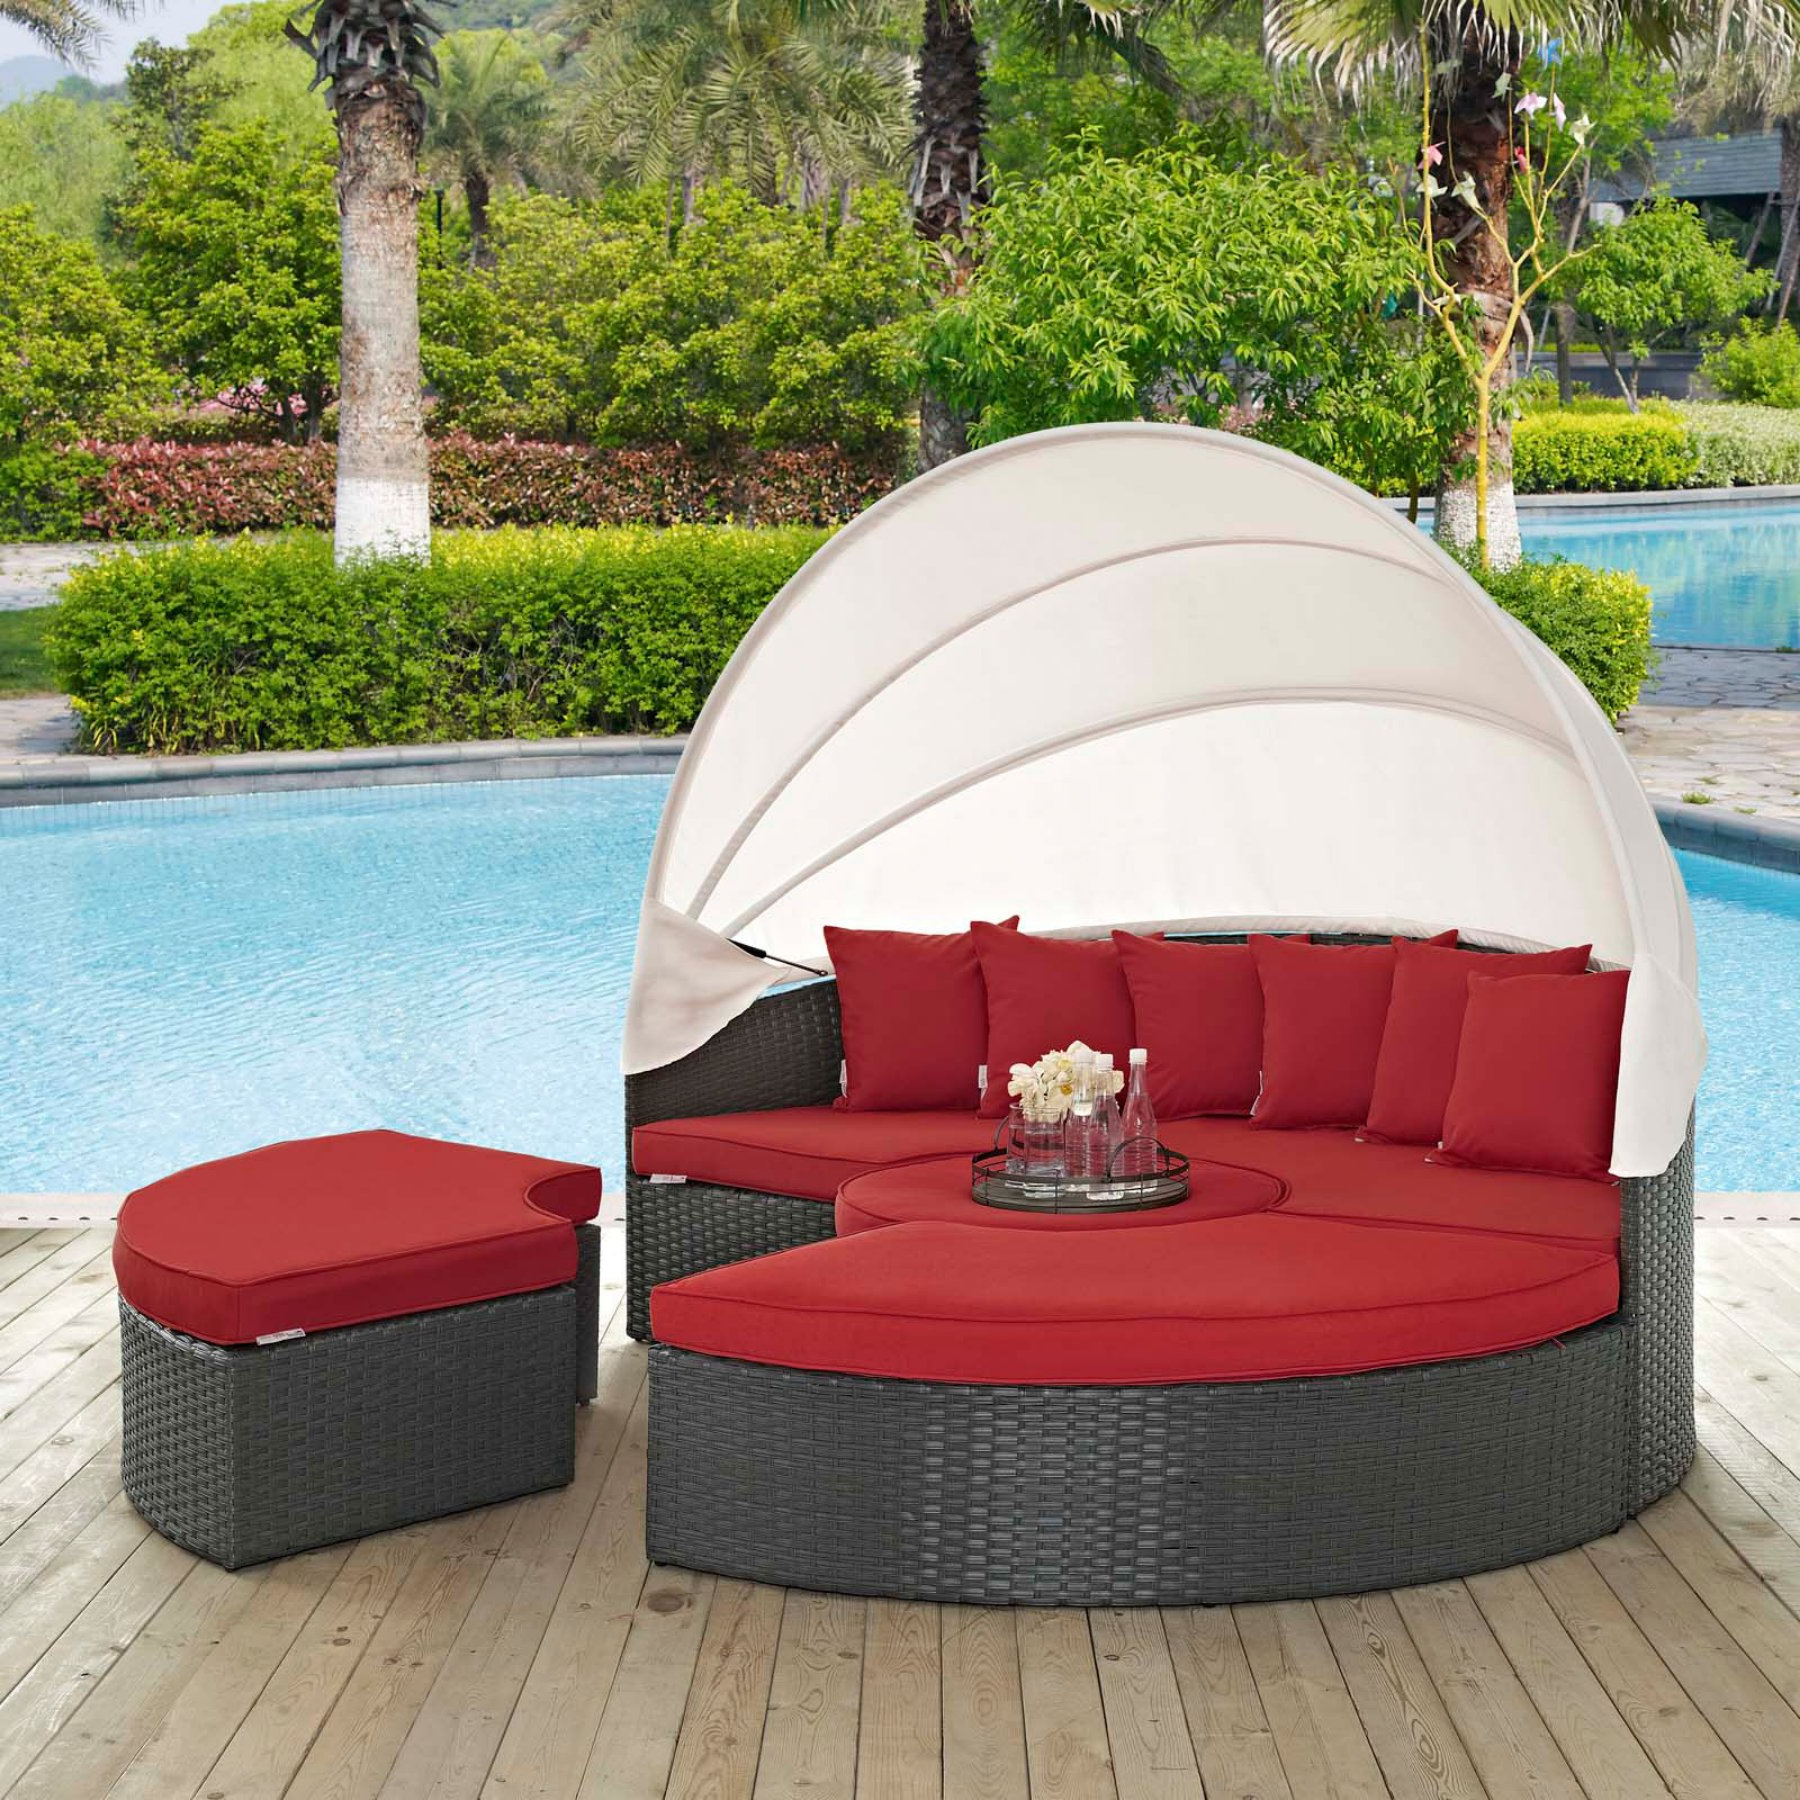 Famous Modway Sojourn Wicker Patio Daybed With Canopy With With Regard To Hatley Patio Daybeds With Cushions (View 3 of 20)